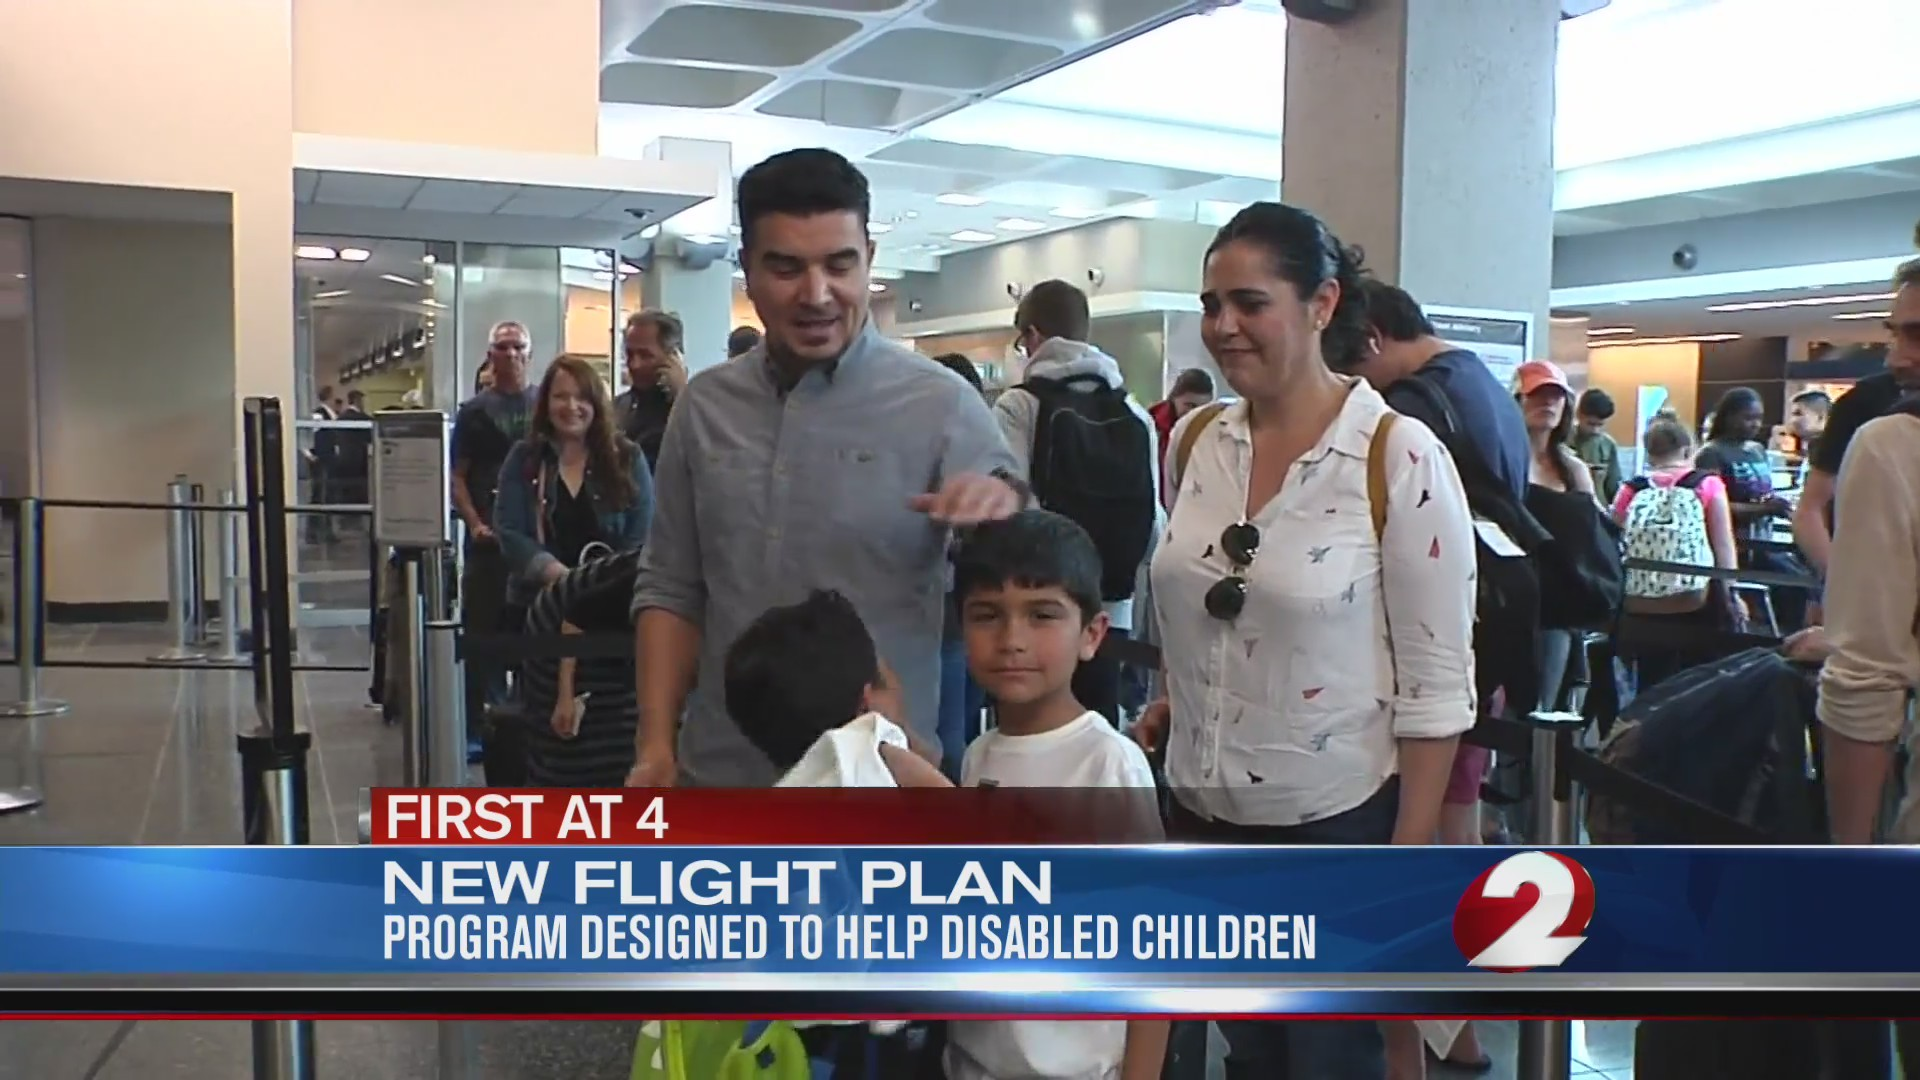 Program designed to help disabled children